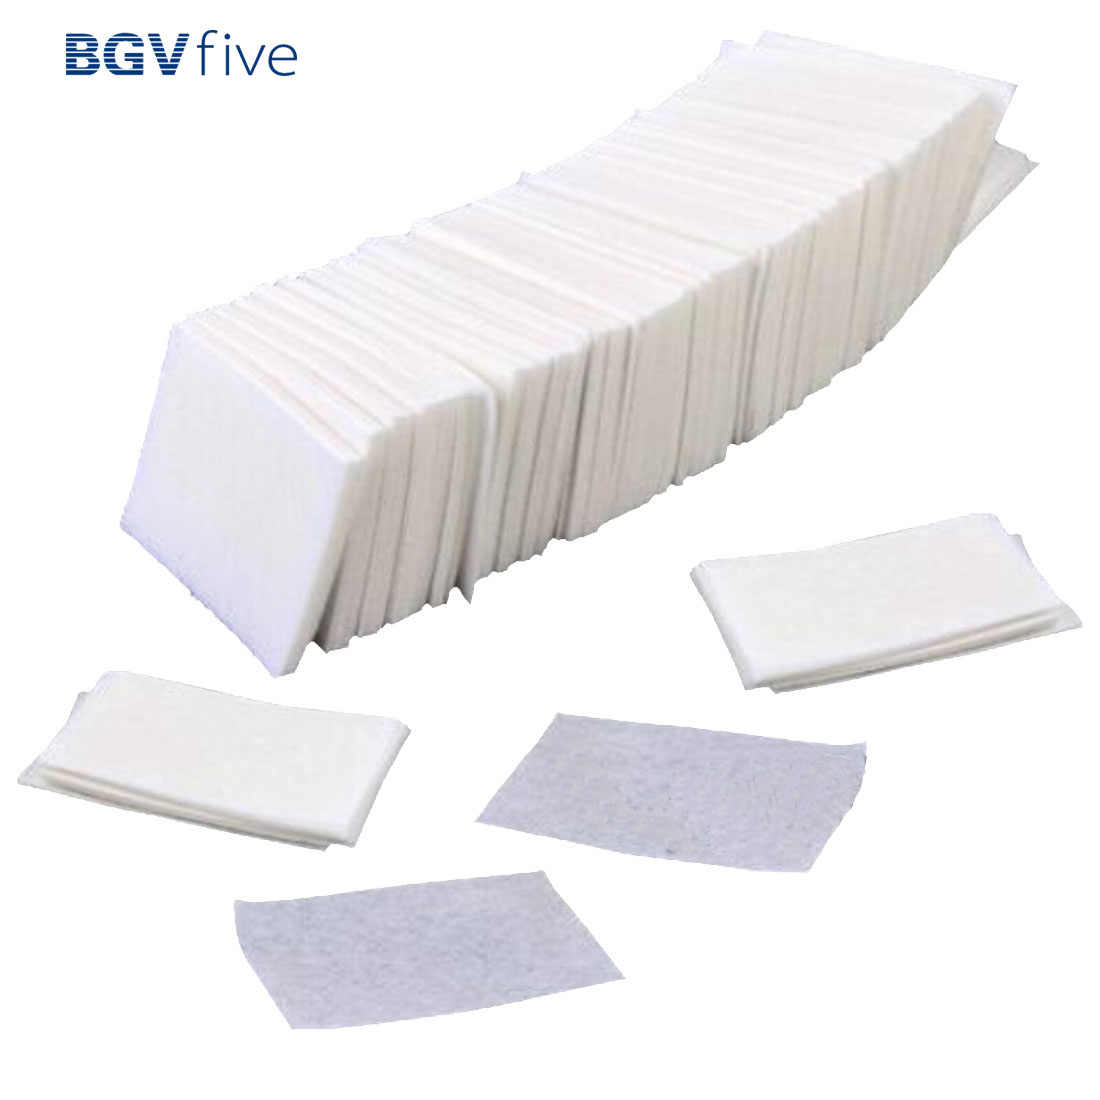 400pcs/set Nail Art wipe Manicure Polish gel nail Wipes Cotton Lint Cotton Pads Paper Acrylic Gel Tips